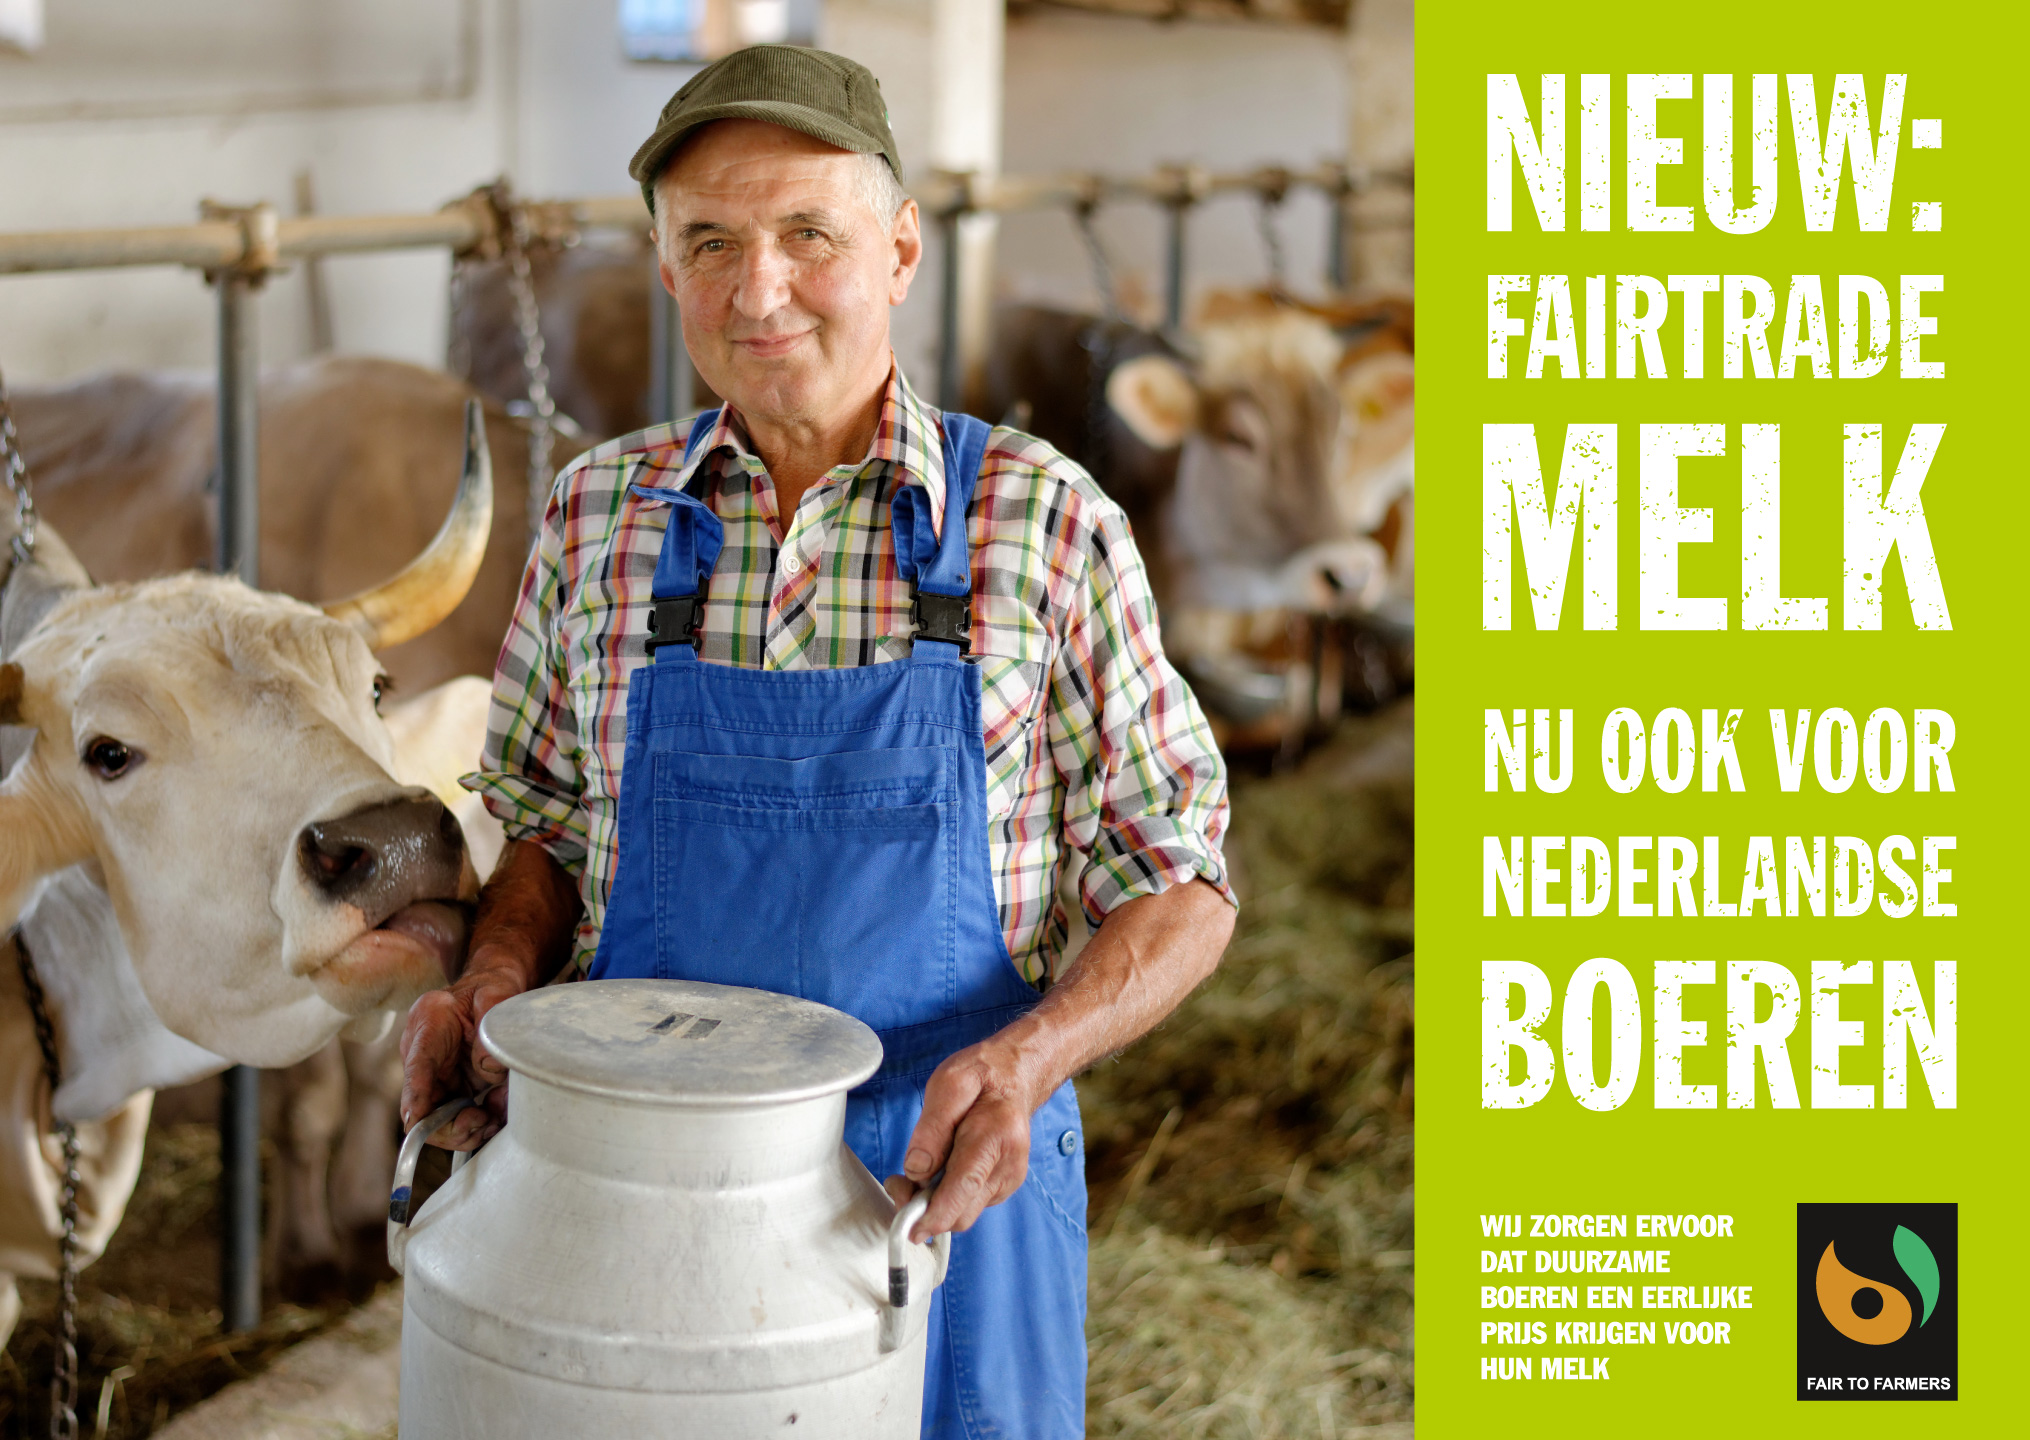 Dagblad-De-Pers-Milieudefensie-Fairtrade-advertentie-melk-campagne-graphic-alert-act-impact